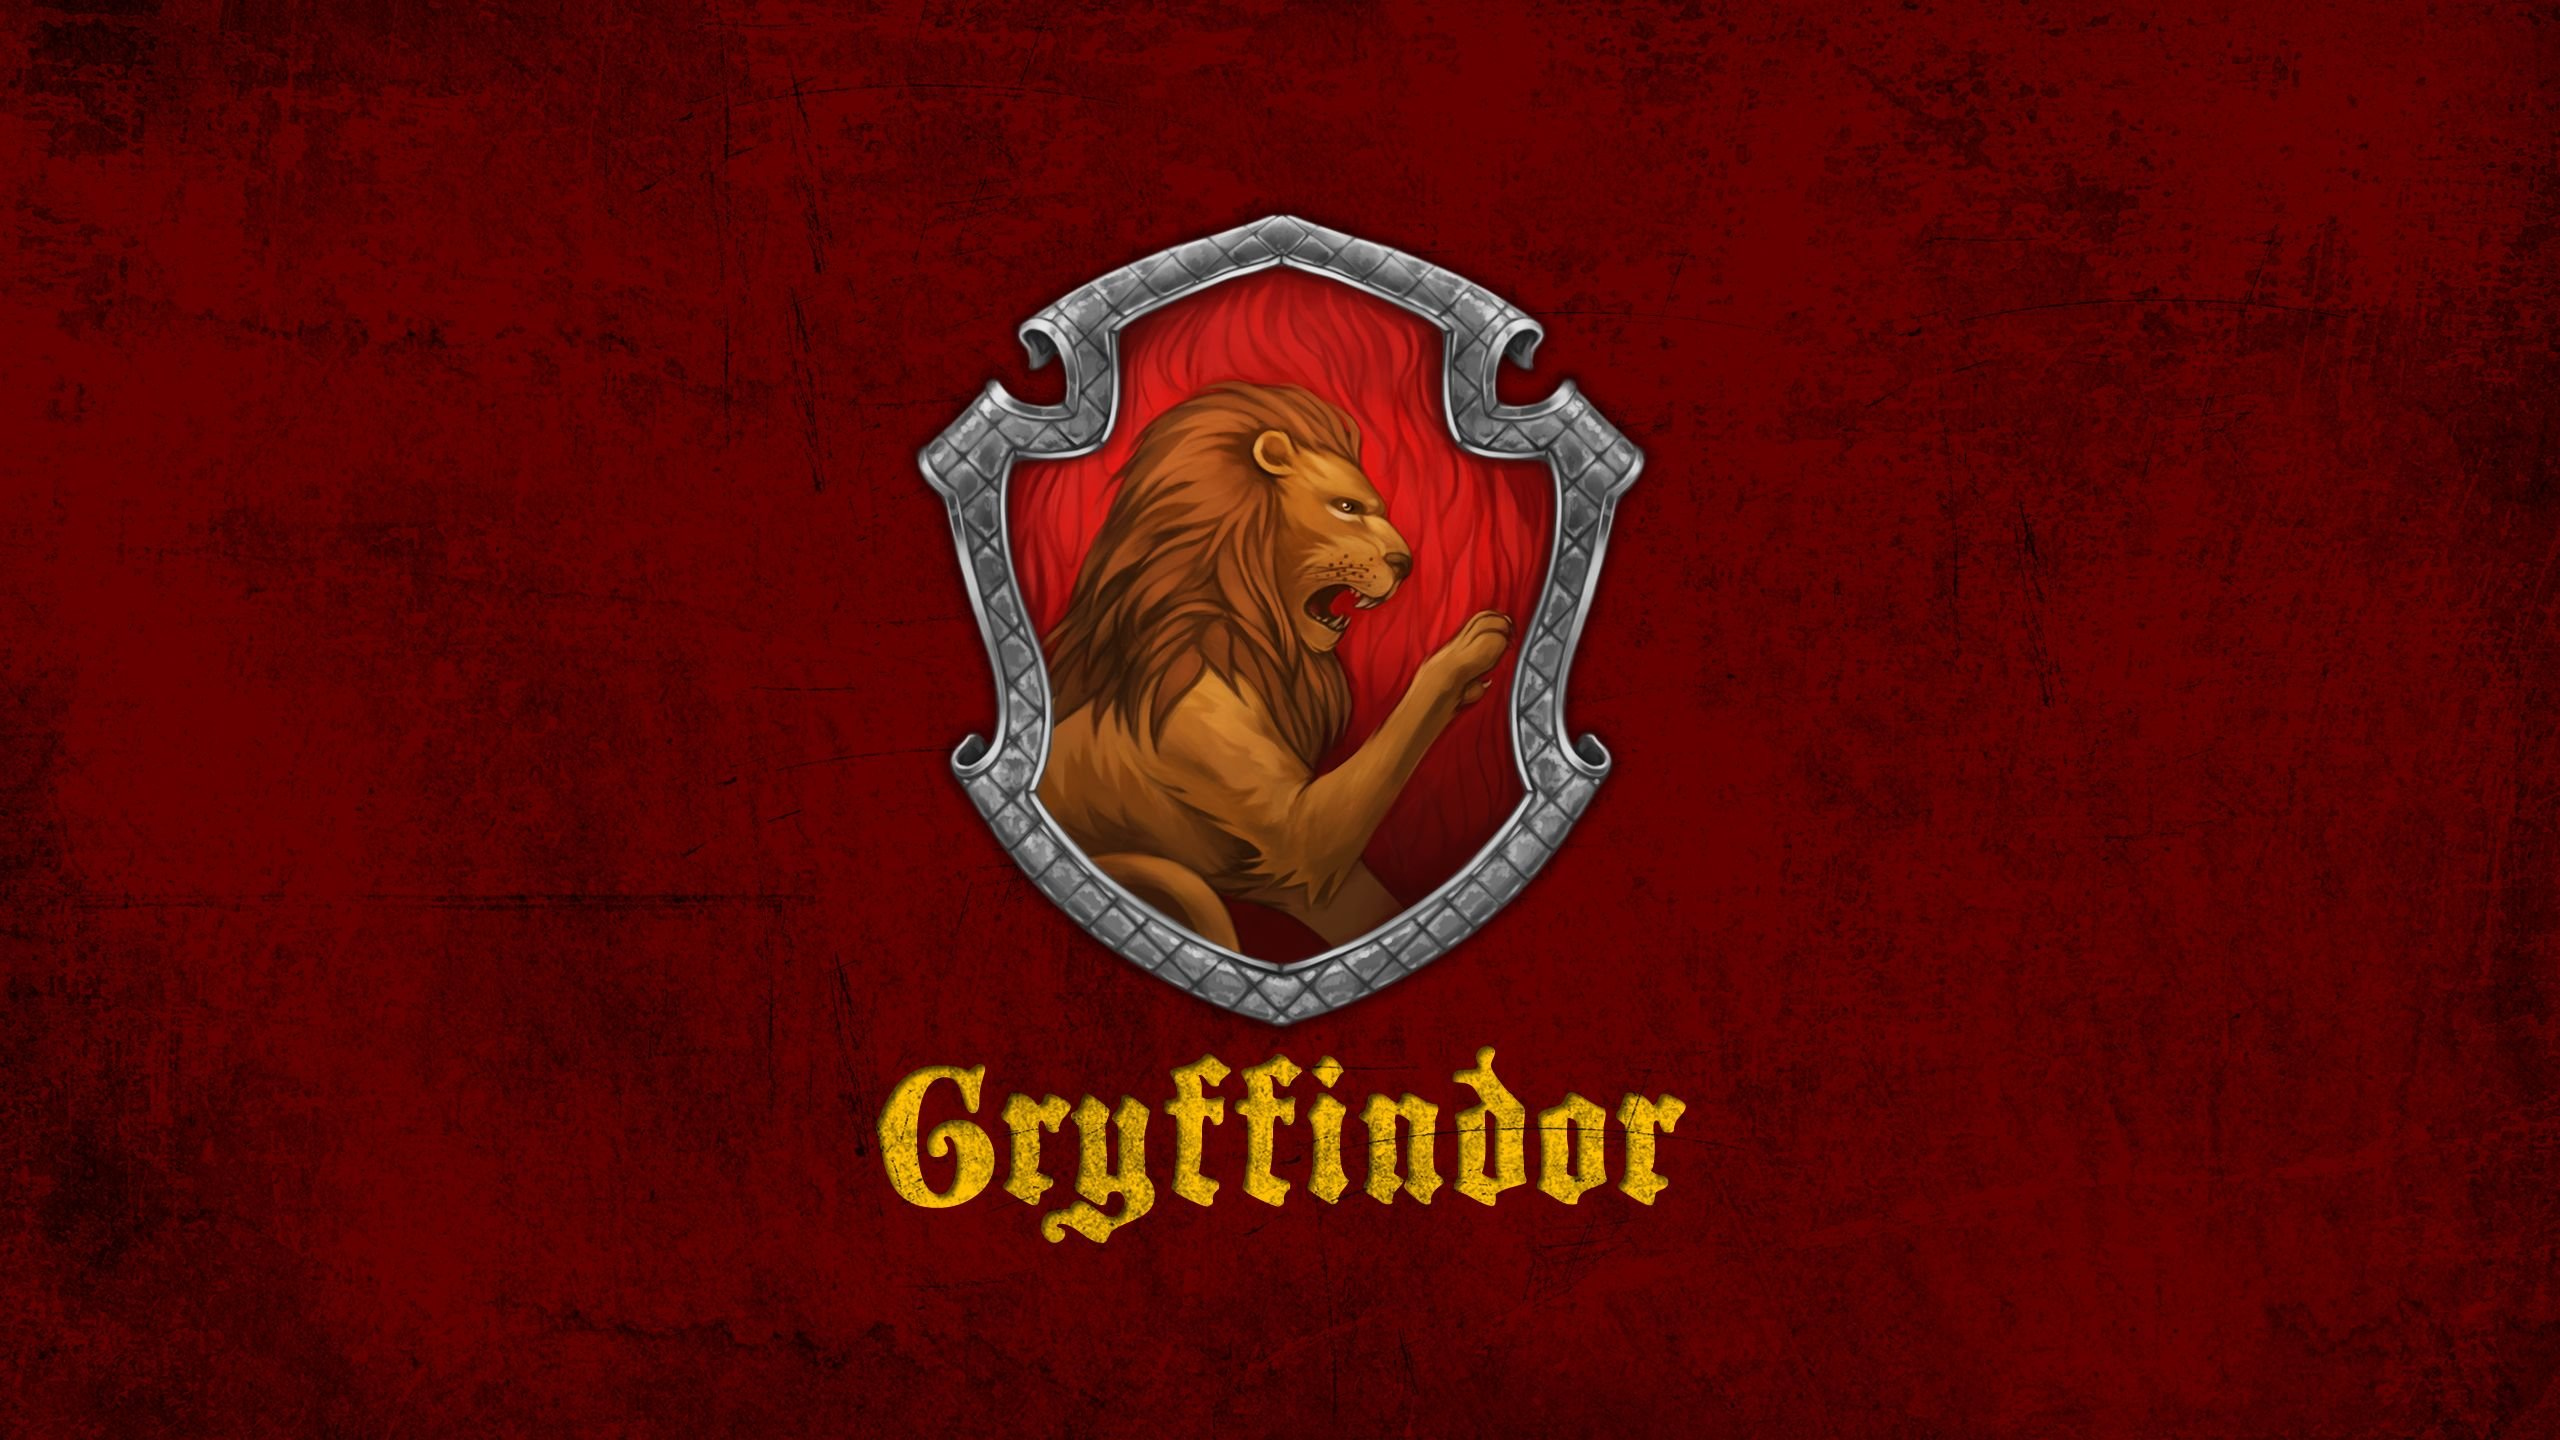 High resolution Gryffindor hd 2560x1440 background ID:463378 for PC